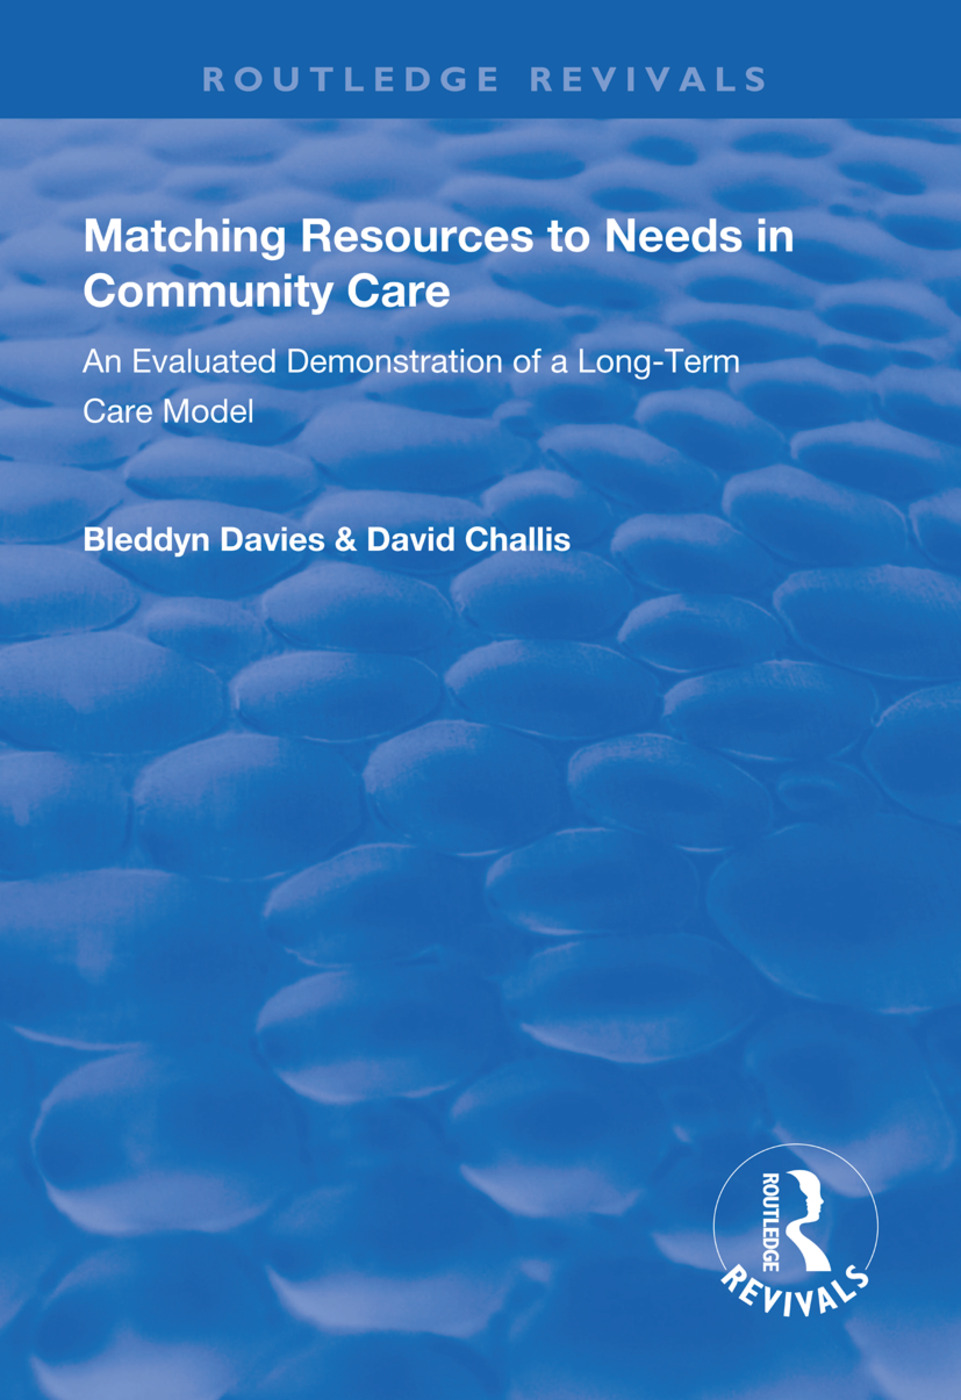 Matching Resources to Needs in Community Care